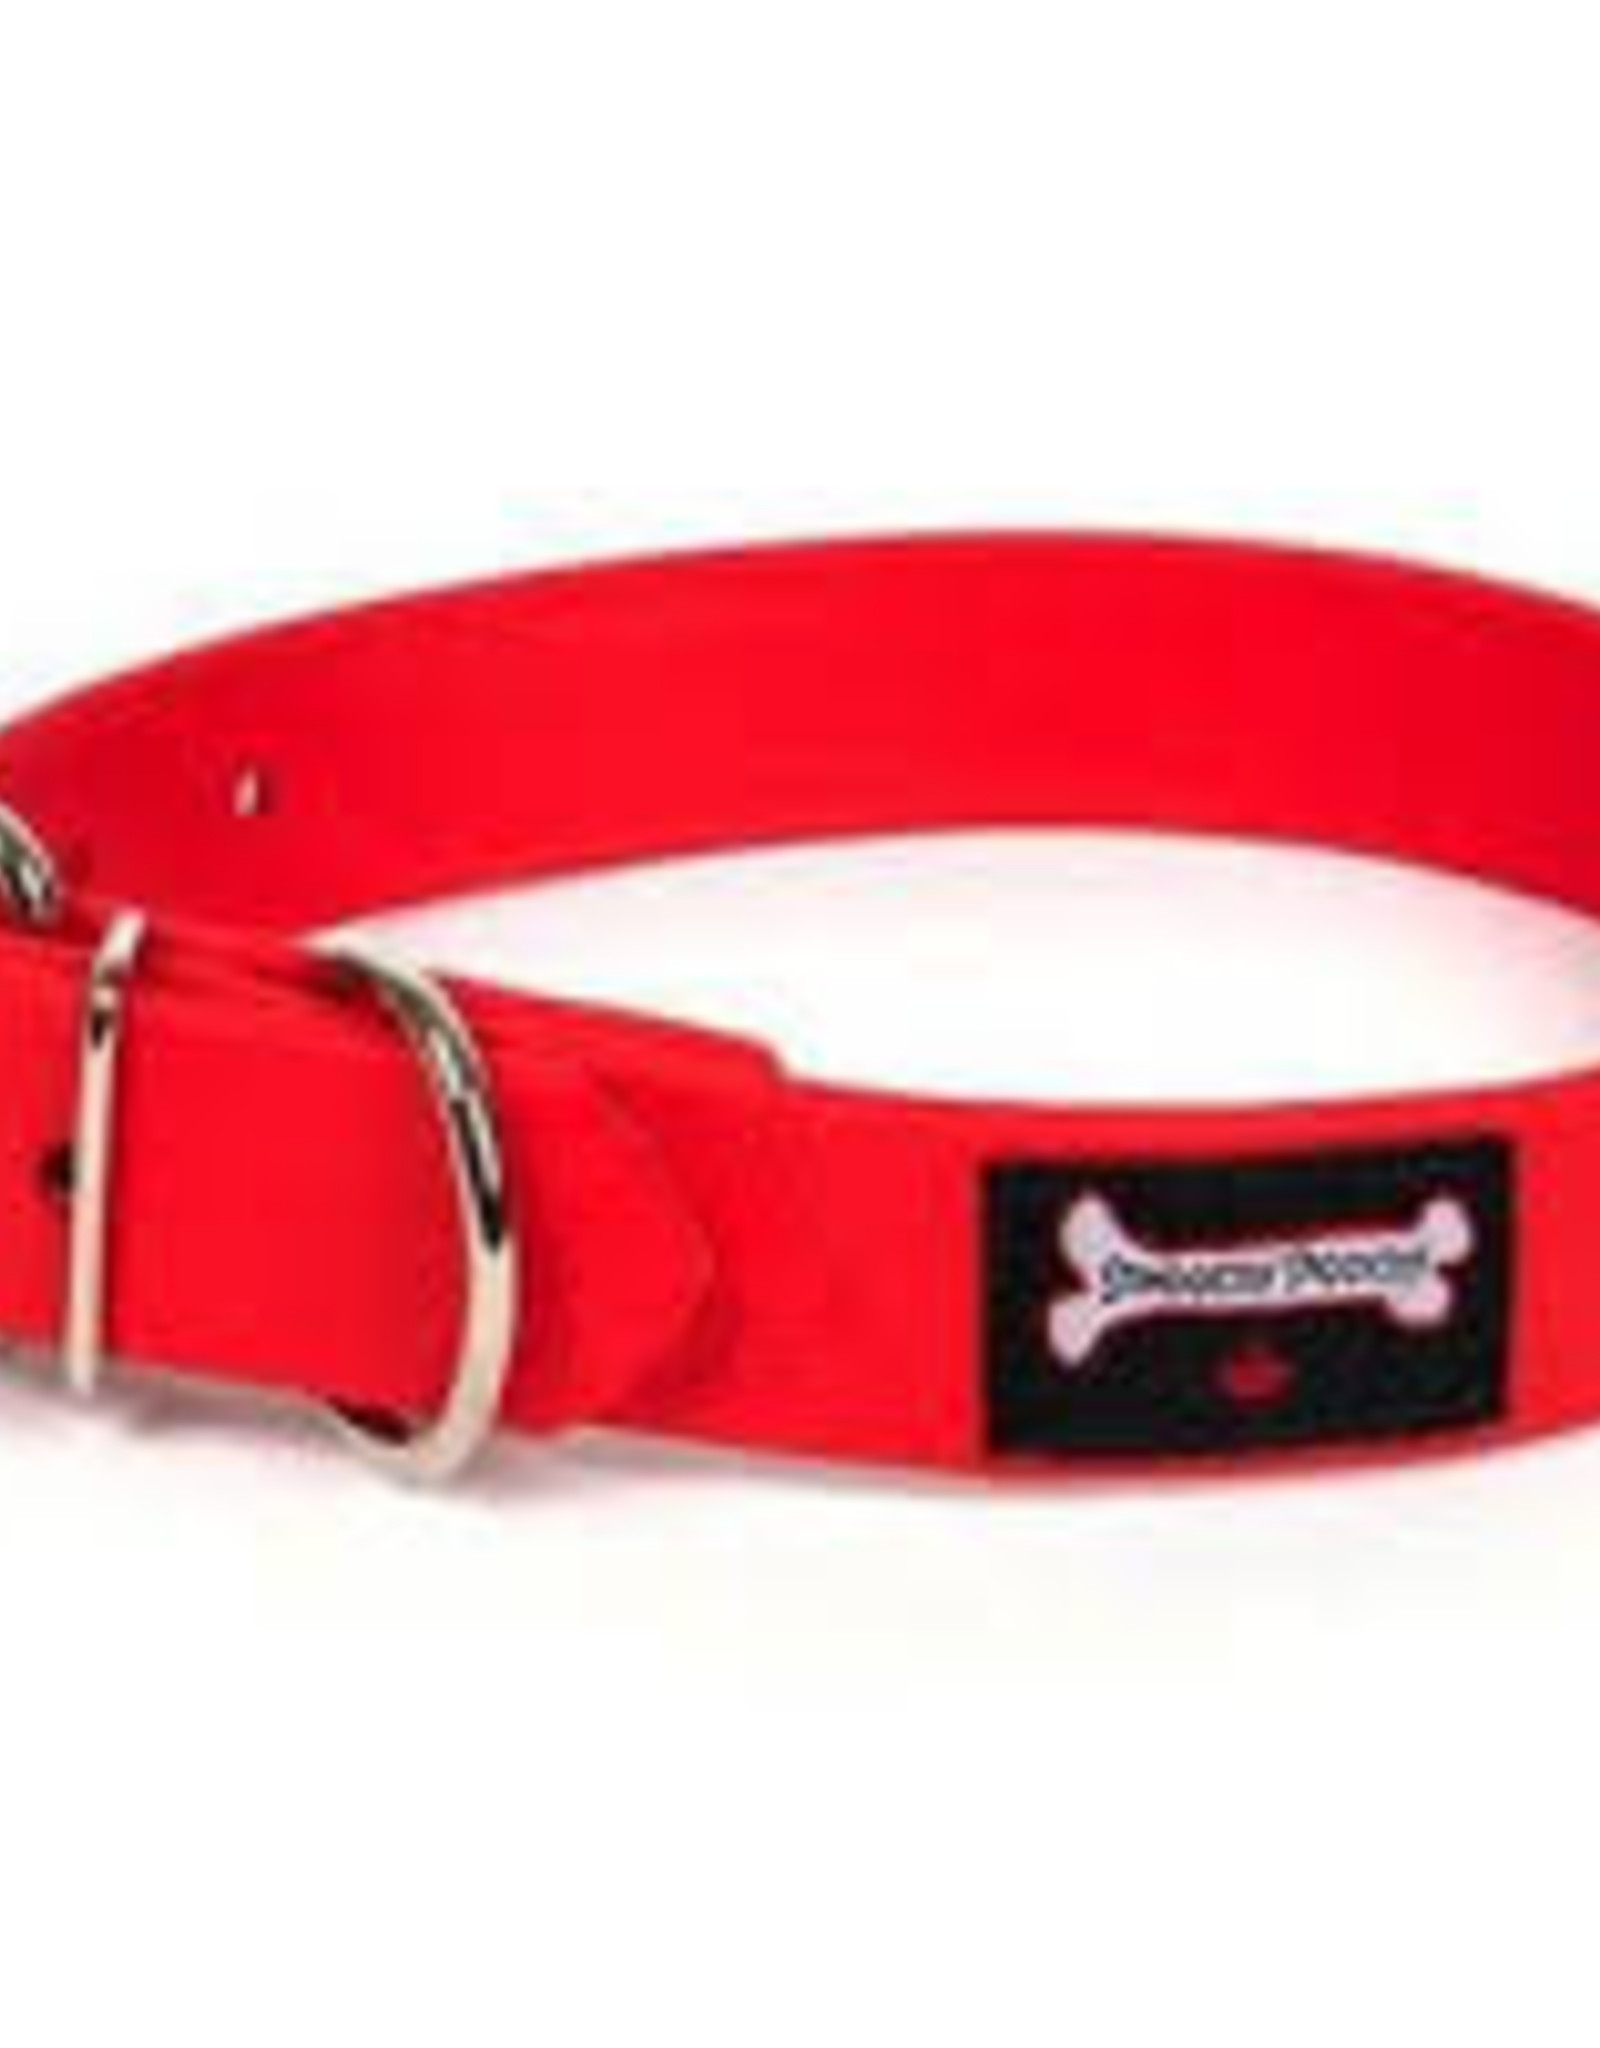 Smoochy Poochy Smoochy Poochy  Cat Collar Red